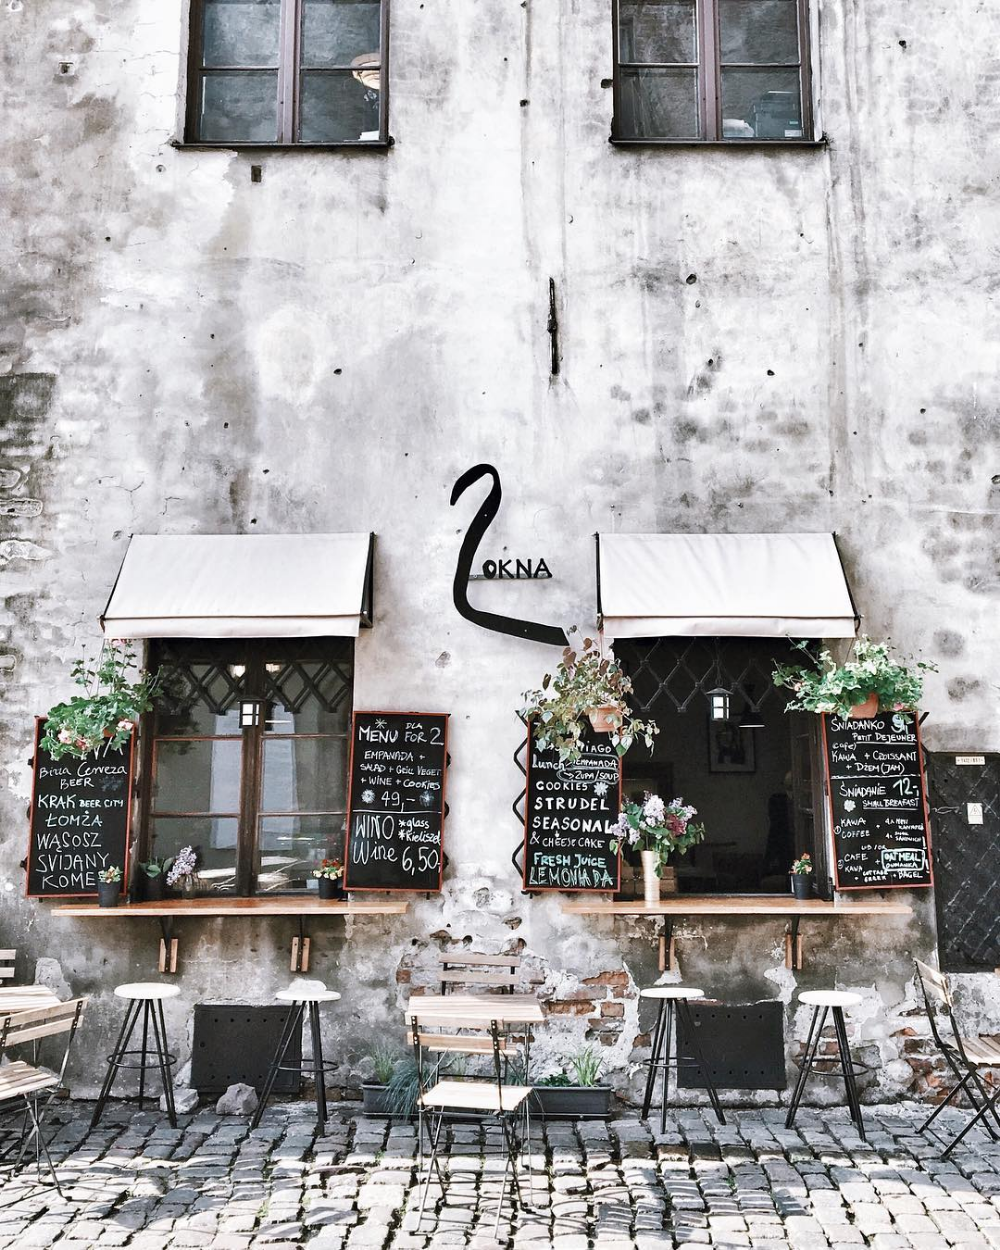 15 Unmissable Things To Do In Krakow - Hostelworld